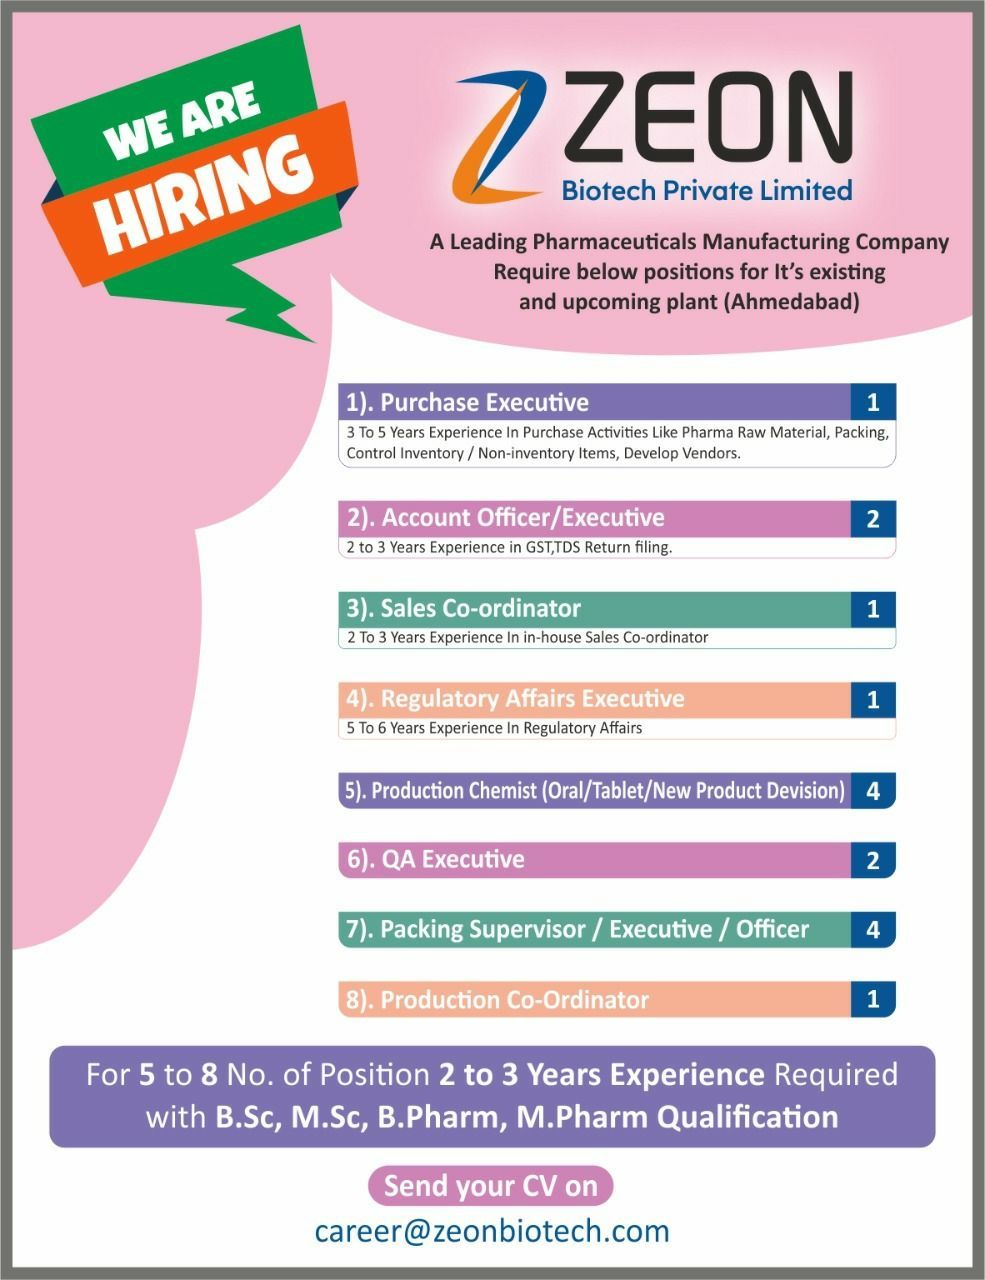 Zeon Biotech Private Limited  Pharmaceuticals Manufacturing Company Require B.Sc, M.Sc, B.Pharm, M.Pharm Candidates